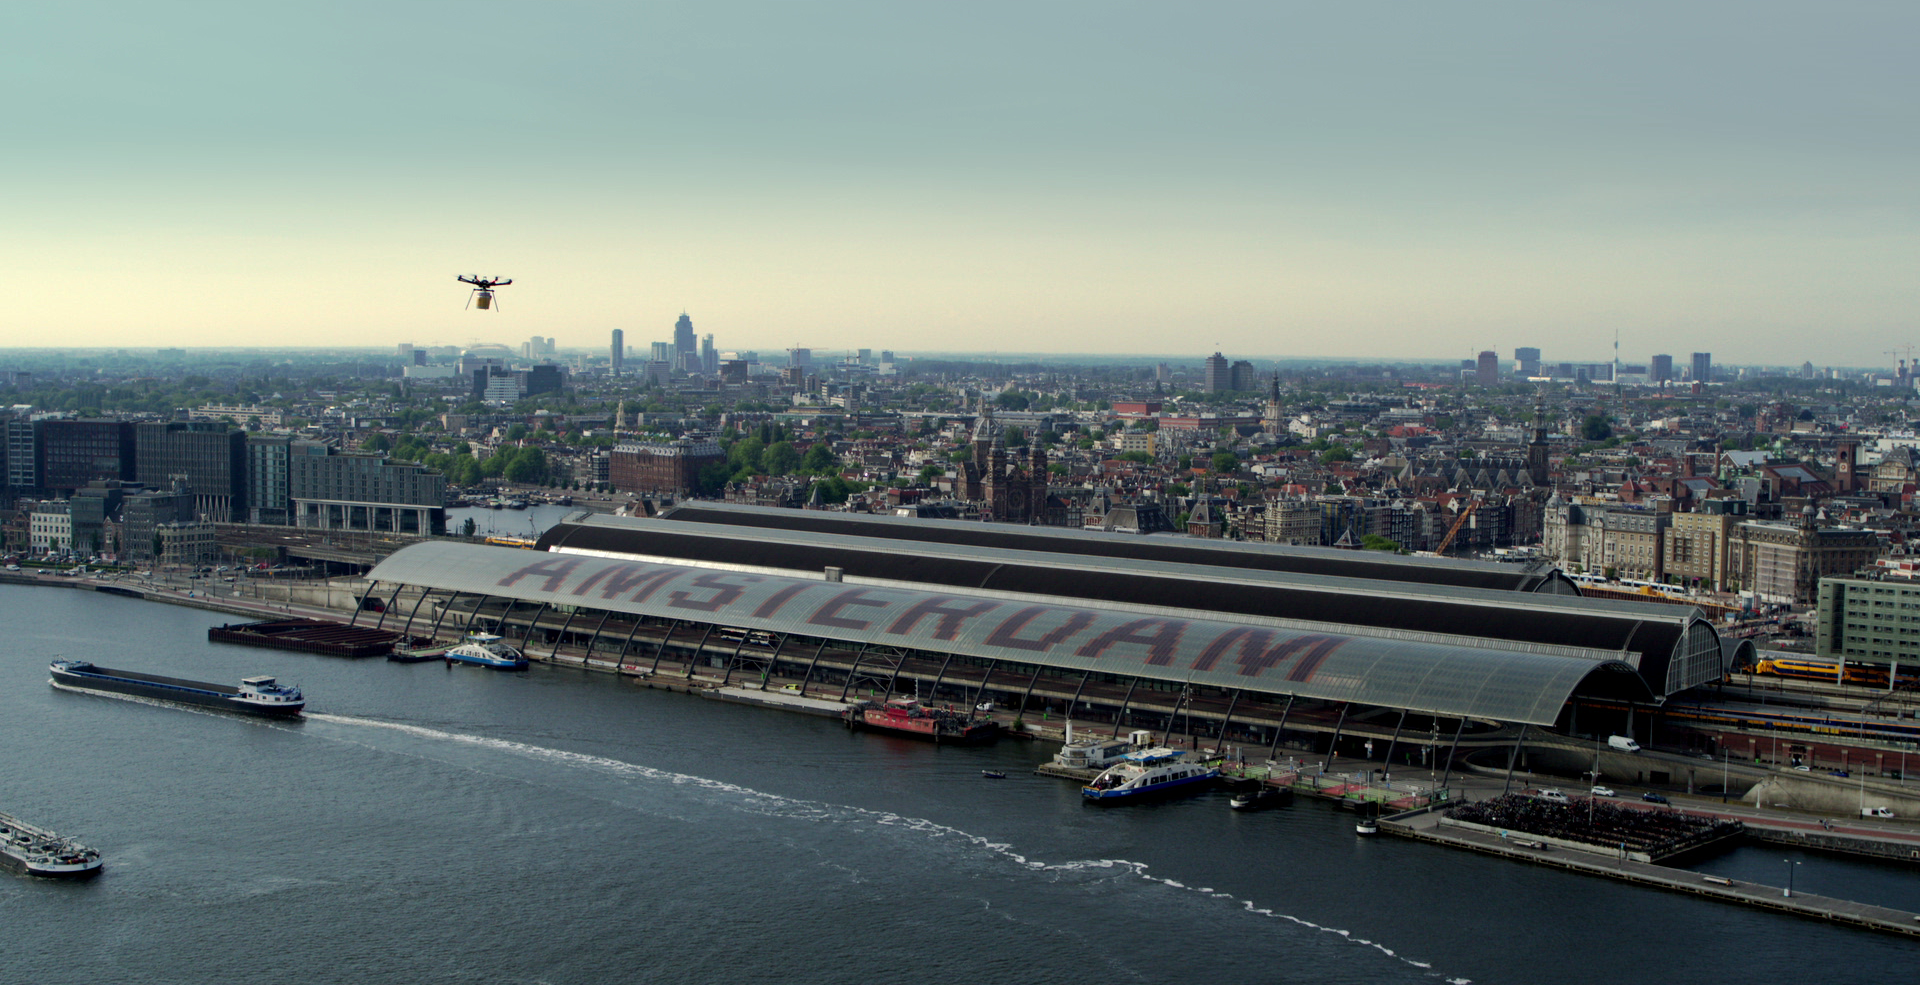 Still from the promo video Hilton Haring Party. An aerial shot overlooking Amsterdam Central Station. A drone is seen approaching the station.